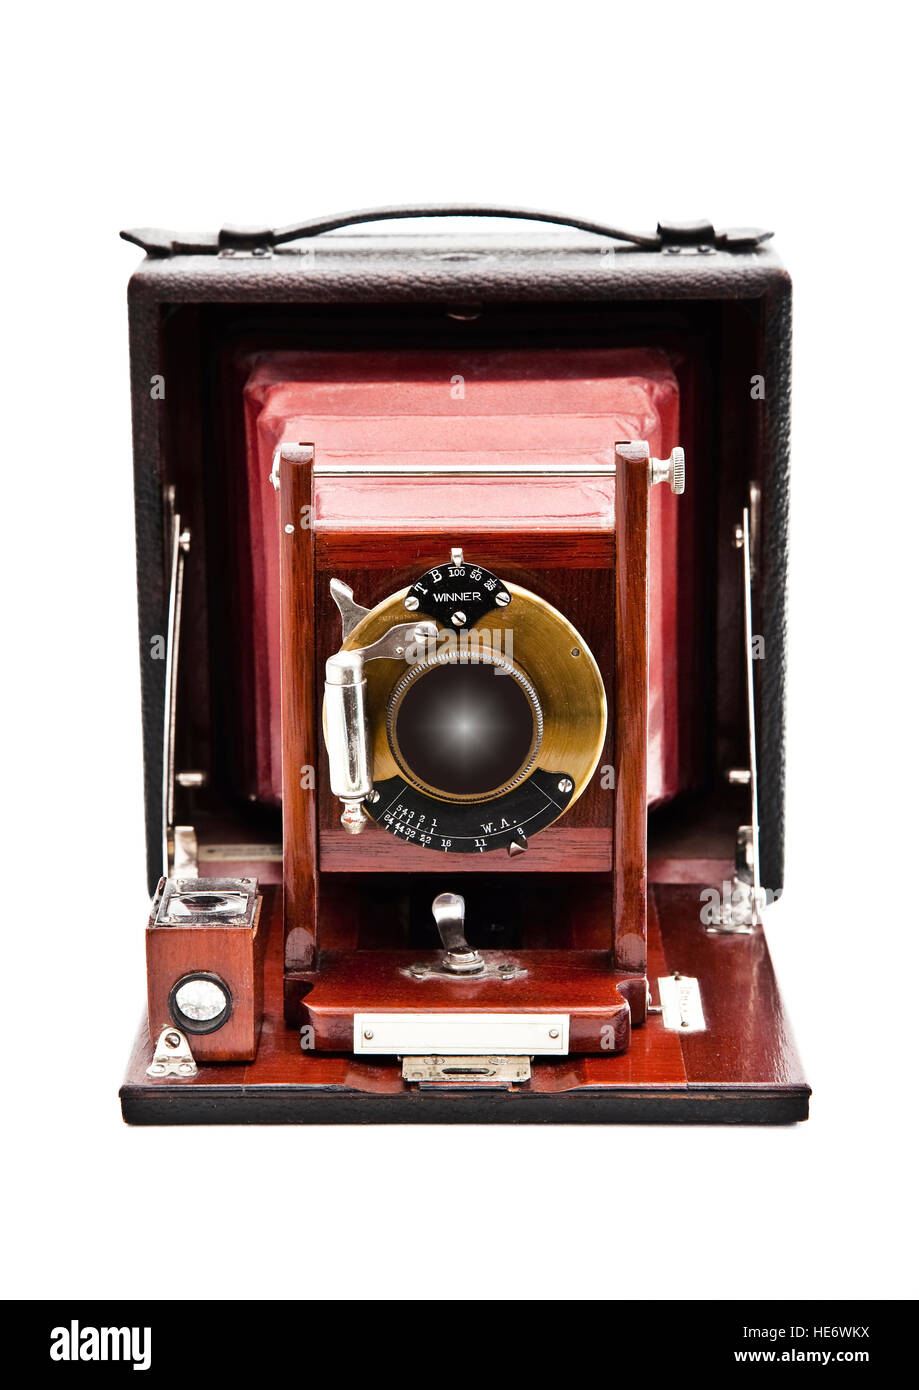 Vintage plate camera with rosewood front lens holder and folding leather bellows. - Stock Image